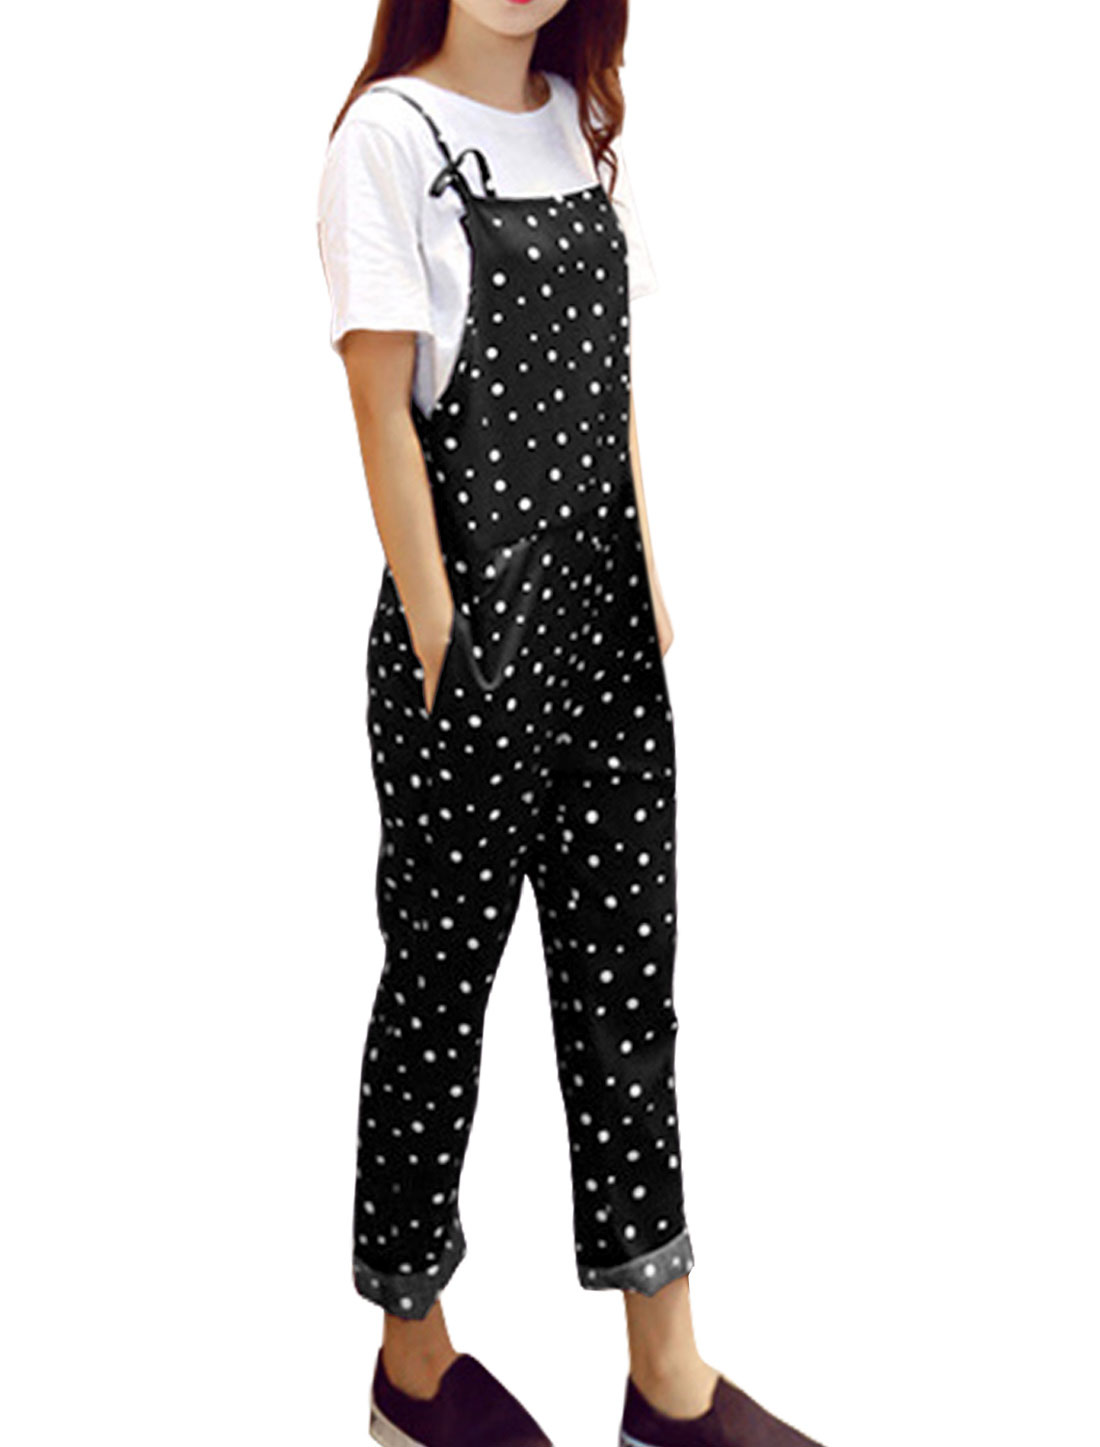 Women Sleeveless Tapered Dots Casual Suspender Pants Black M